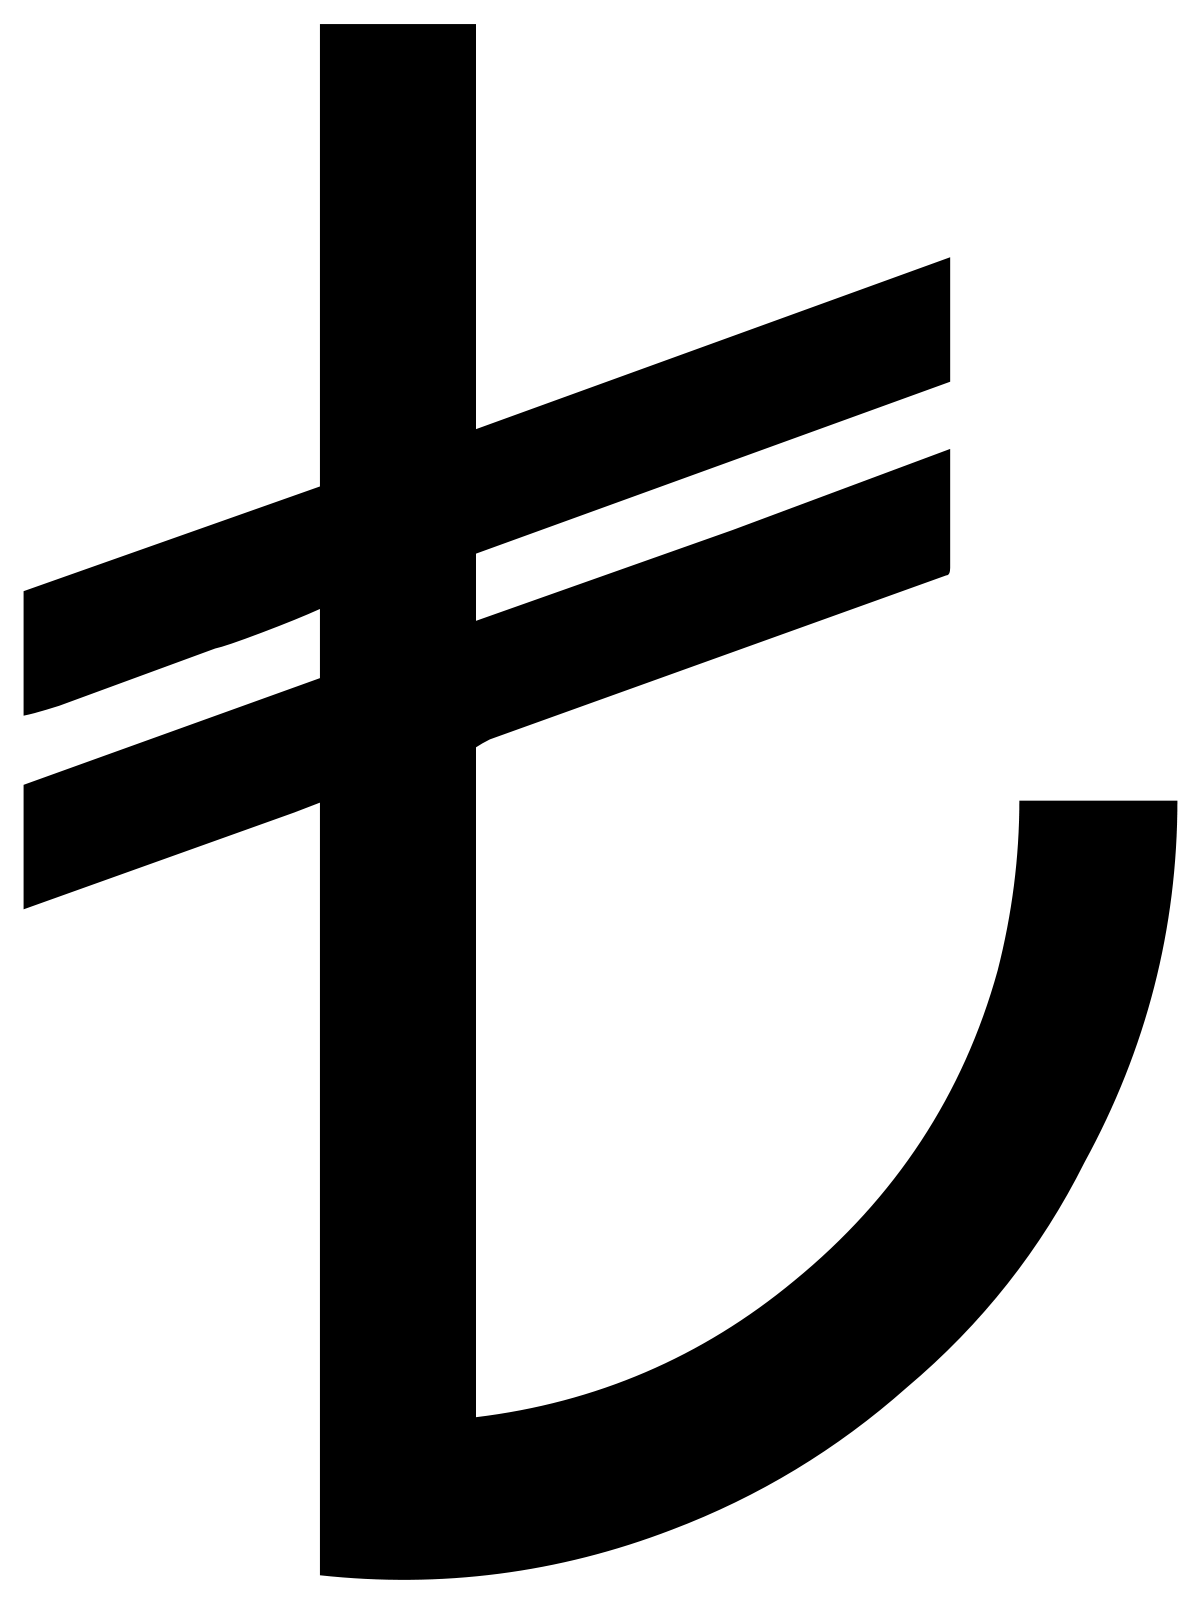 5 tl png. Image